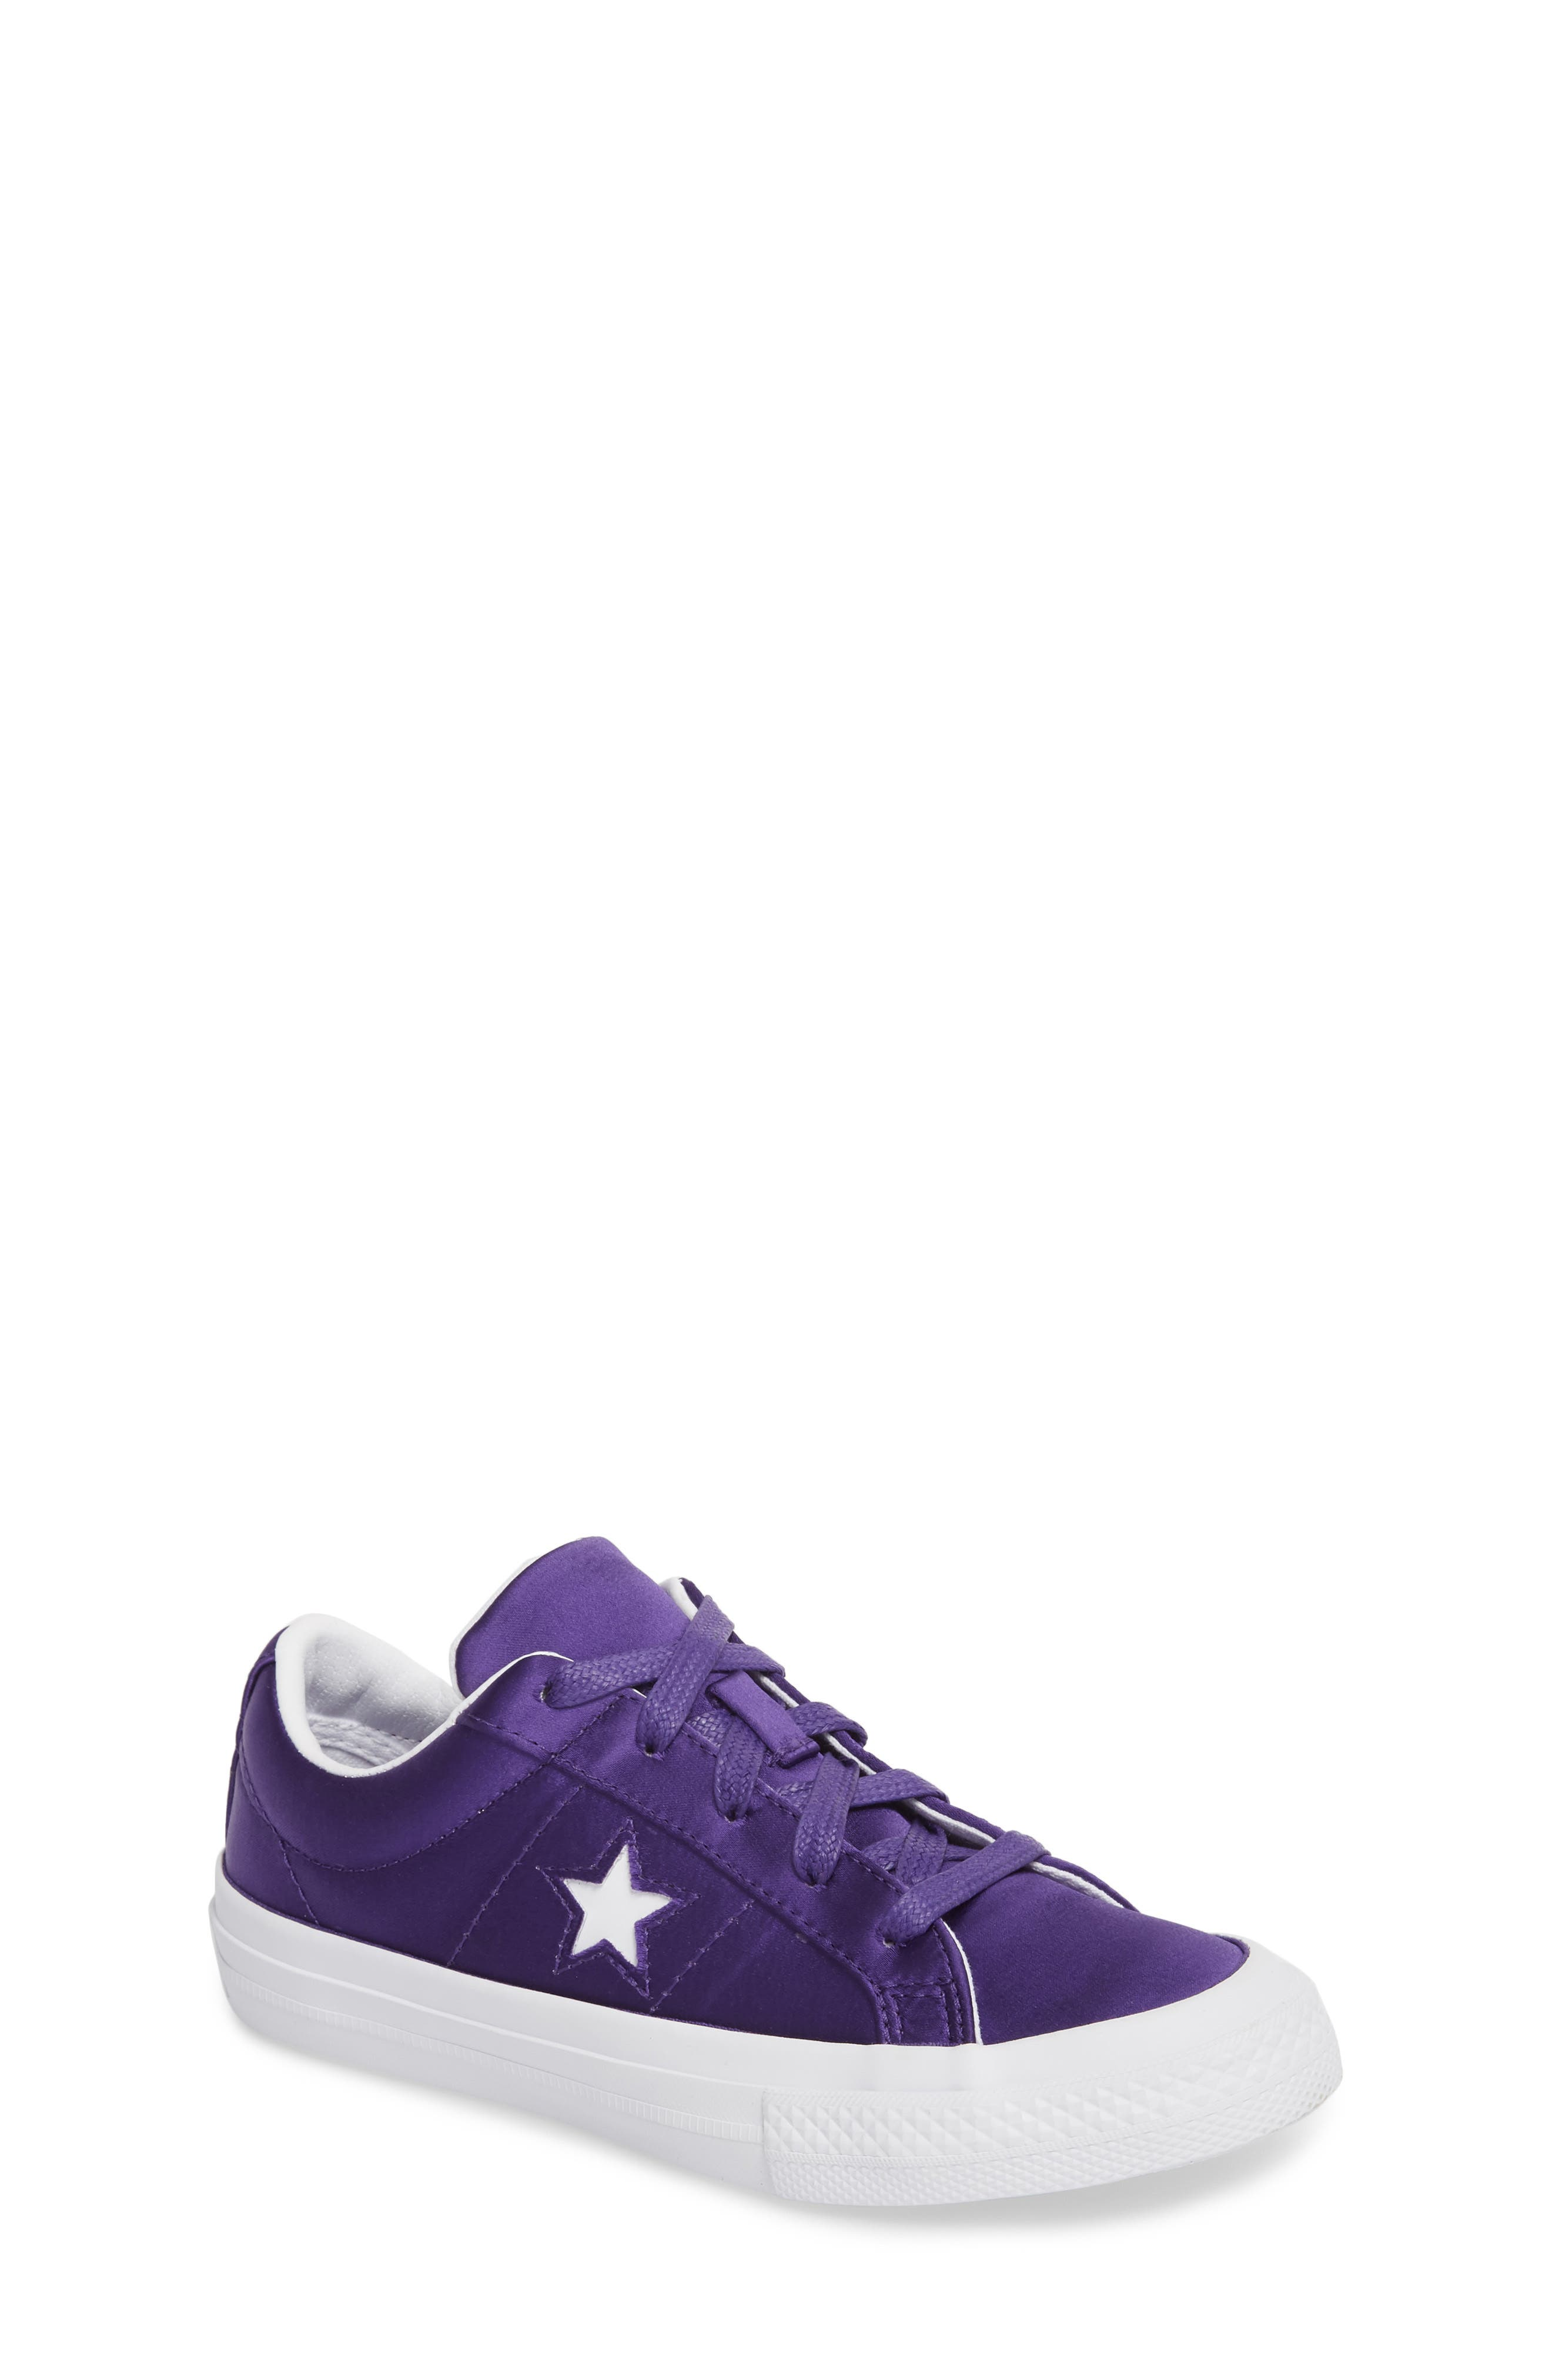 Chuck Taylor<sup>®</sup> All Star<sup>®</sup> One Star Satin Low Top Sneaker,                         Main,                         color, 510